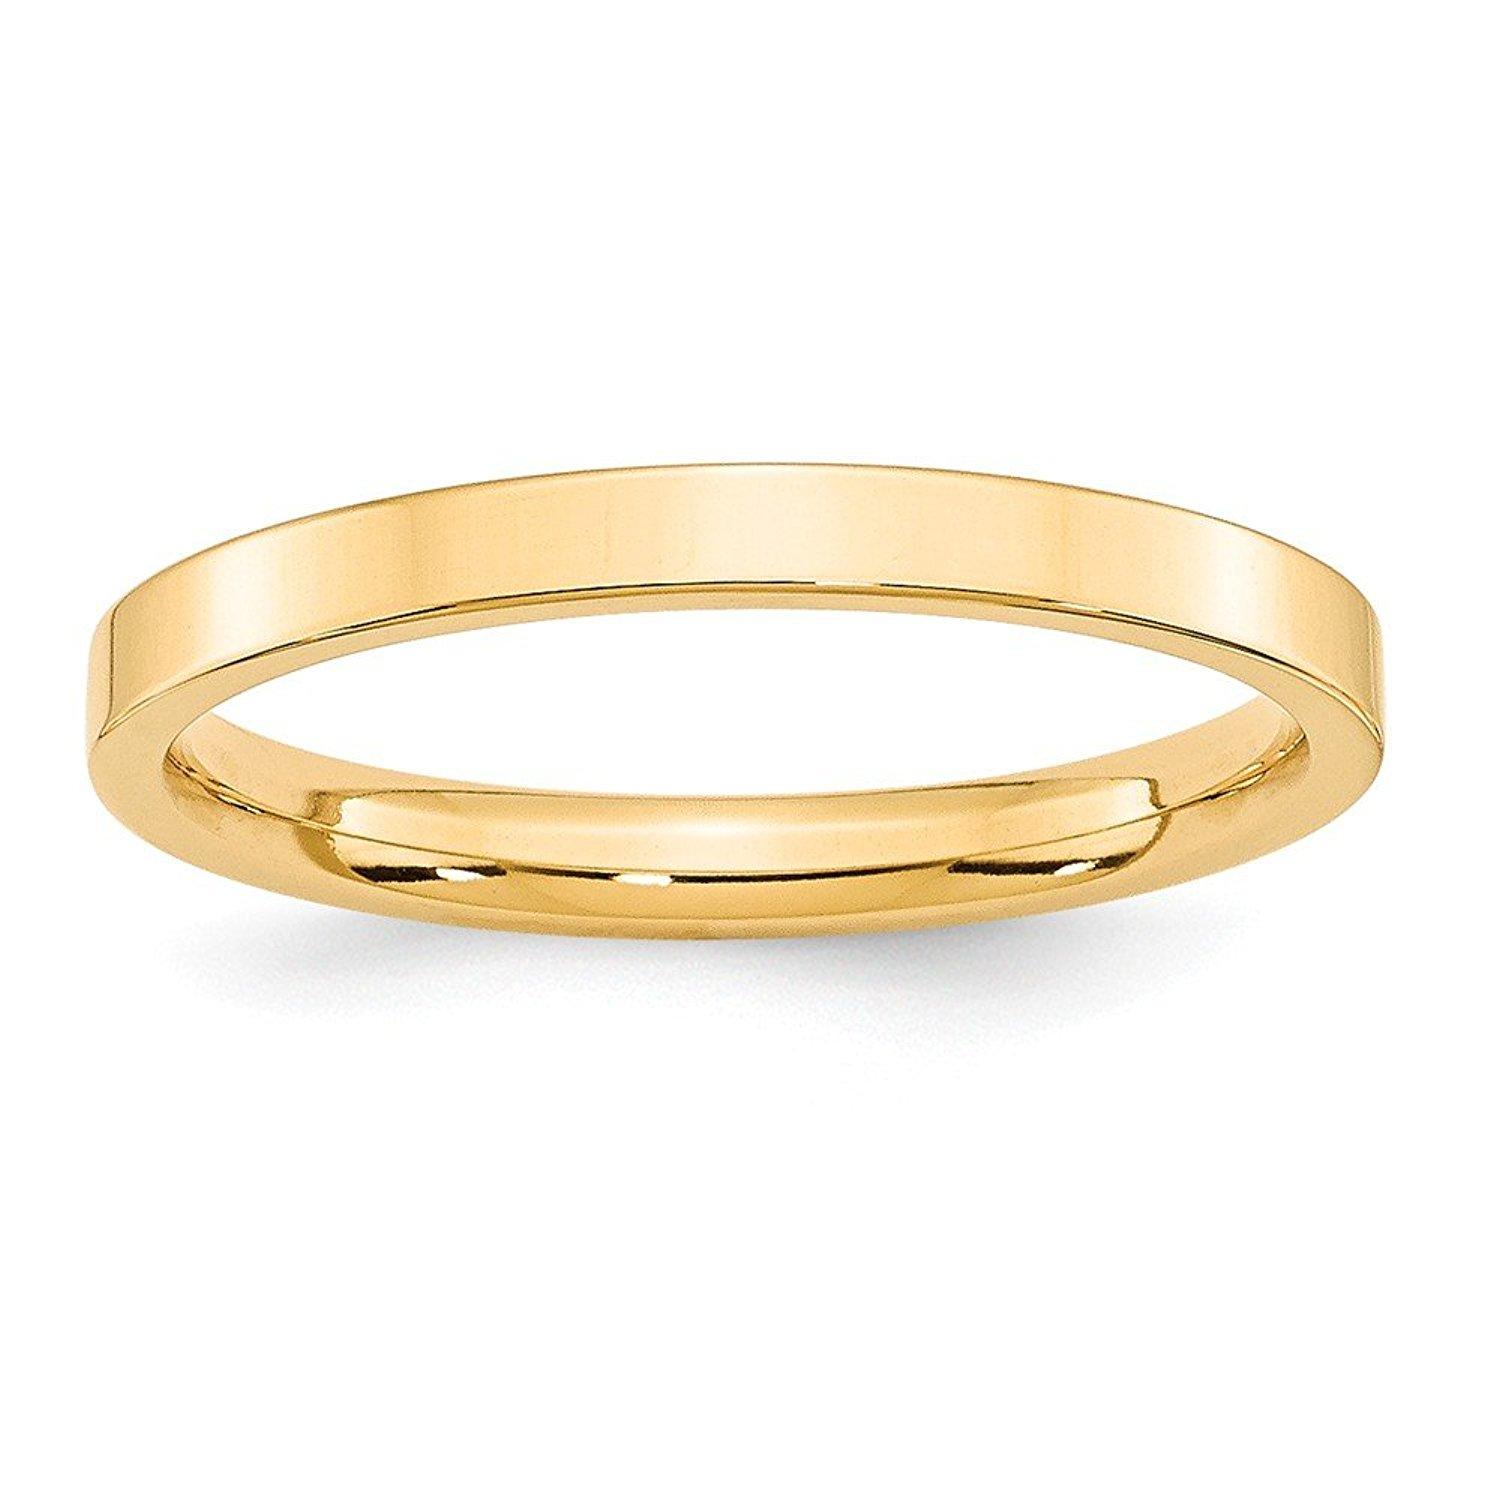 Best Designer Jewelry 14KY 2.5mm Standard Flat Comfort Fit Band Size 6